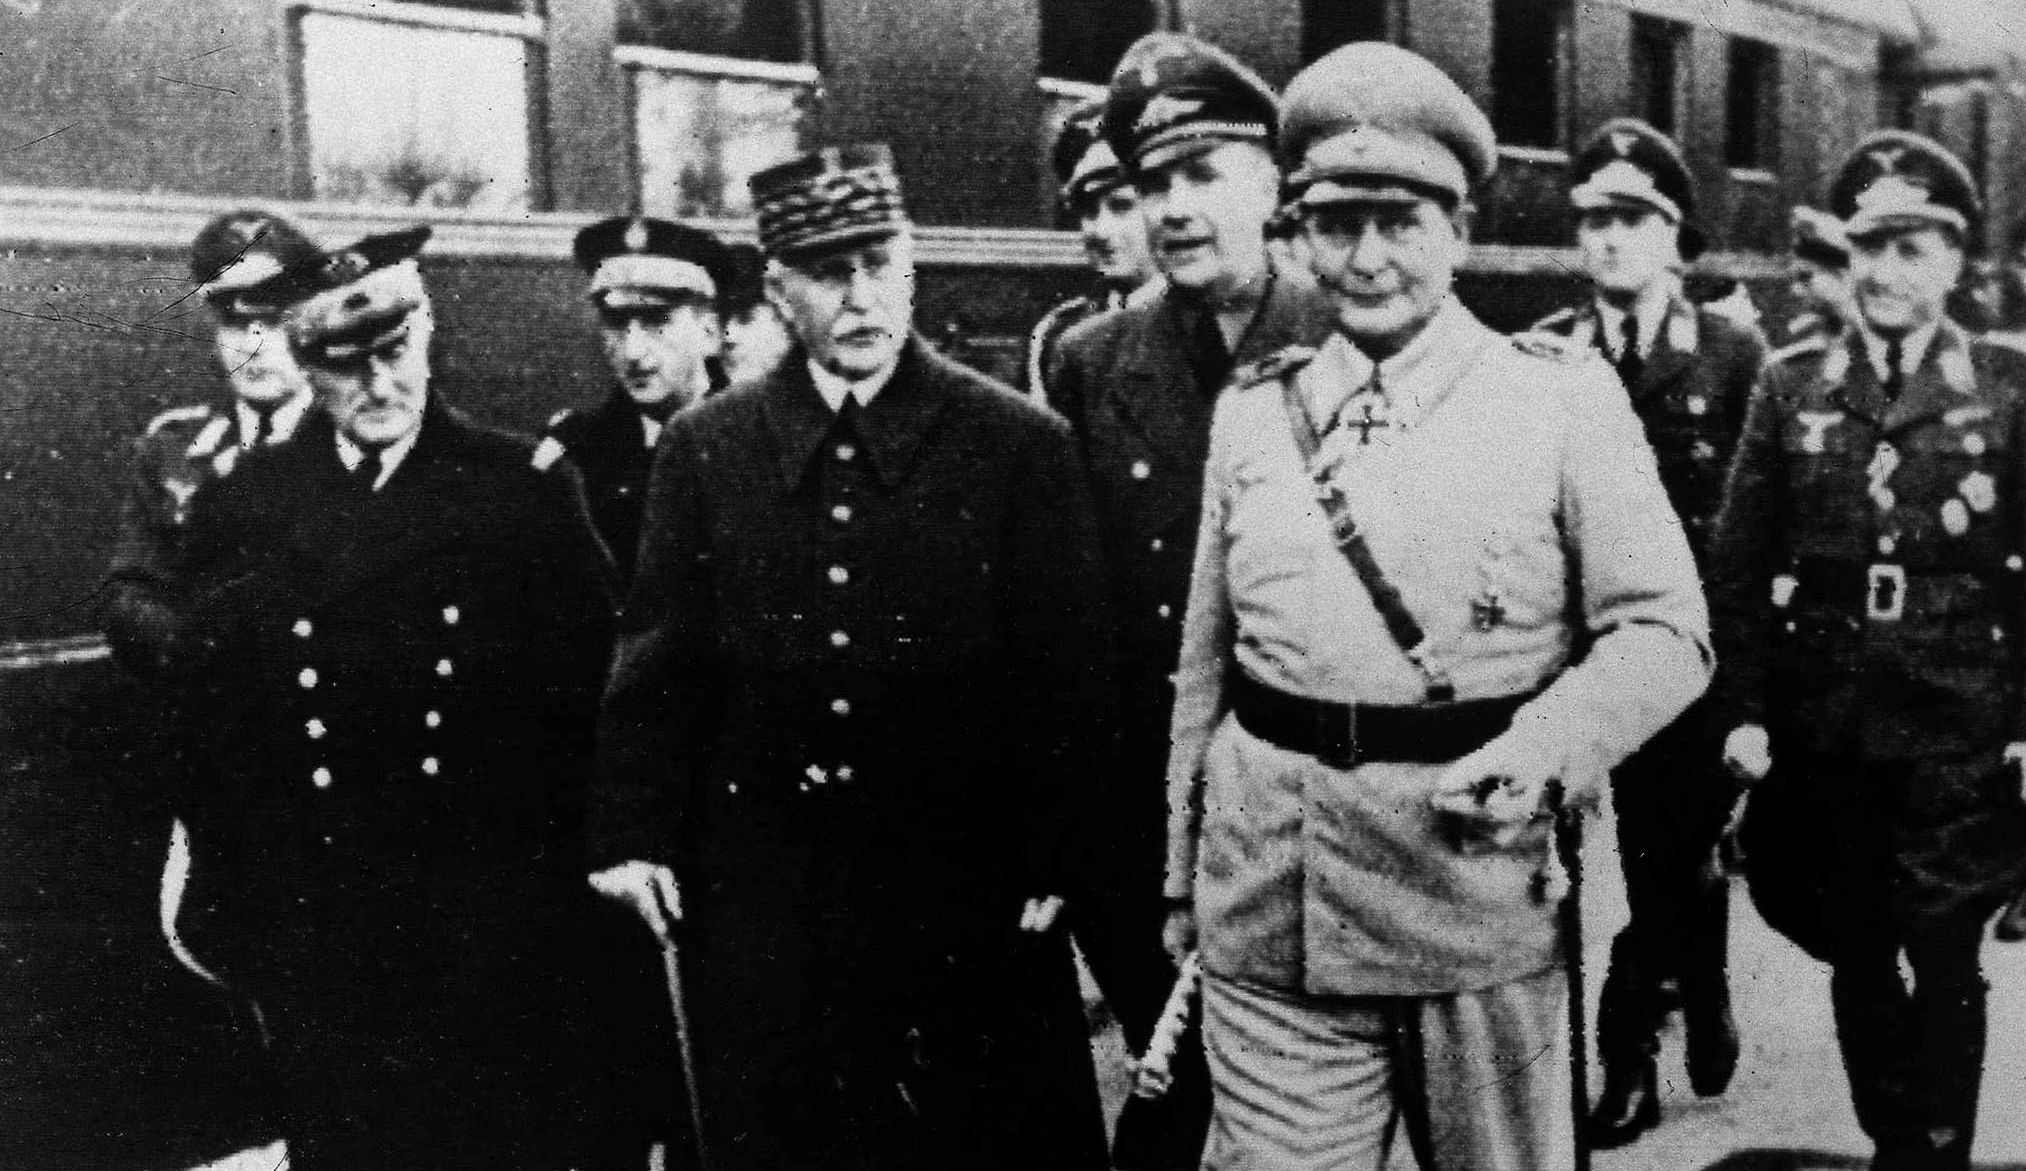 Admiral Jean-François Darlan, Marshal Phillipe Petain and Air Marshal Hermann Goering after ameeting between Vichy and Nazi leaders at which they discussed the handing over of bases in French North Africa to the Nazis. Popperfoto/Getty Images.